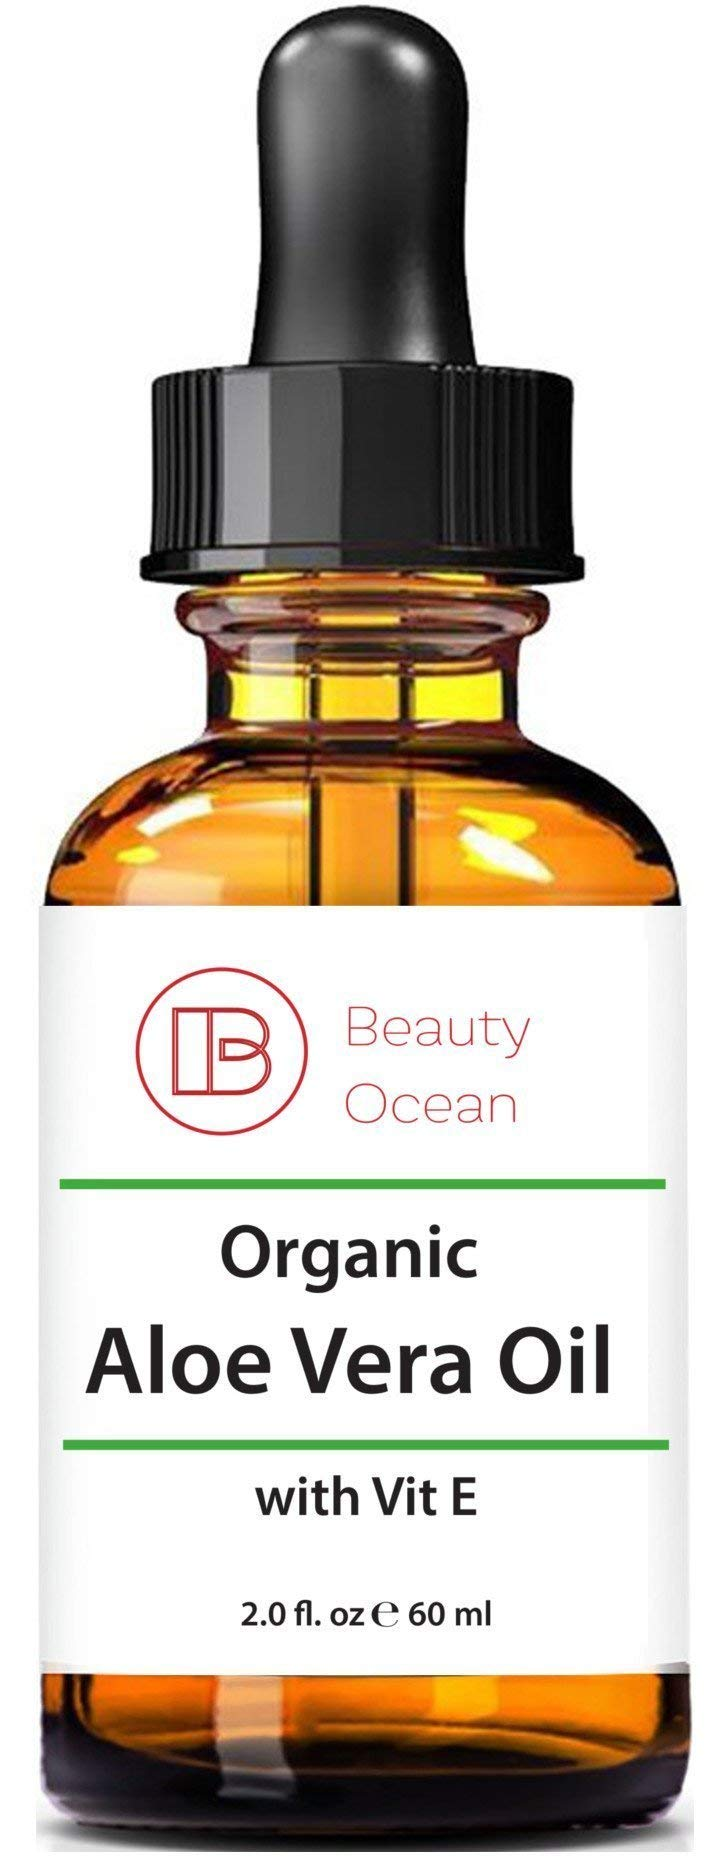 Pure Organic Aloe Vera Oil, 2 oz For Hair, Skin, Face, Body and Sun Burns -100% Organic, Cold Pressed, Natural Oil from Beauty Ocean by Beauty Ocean